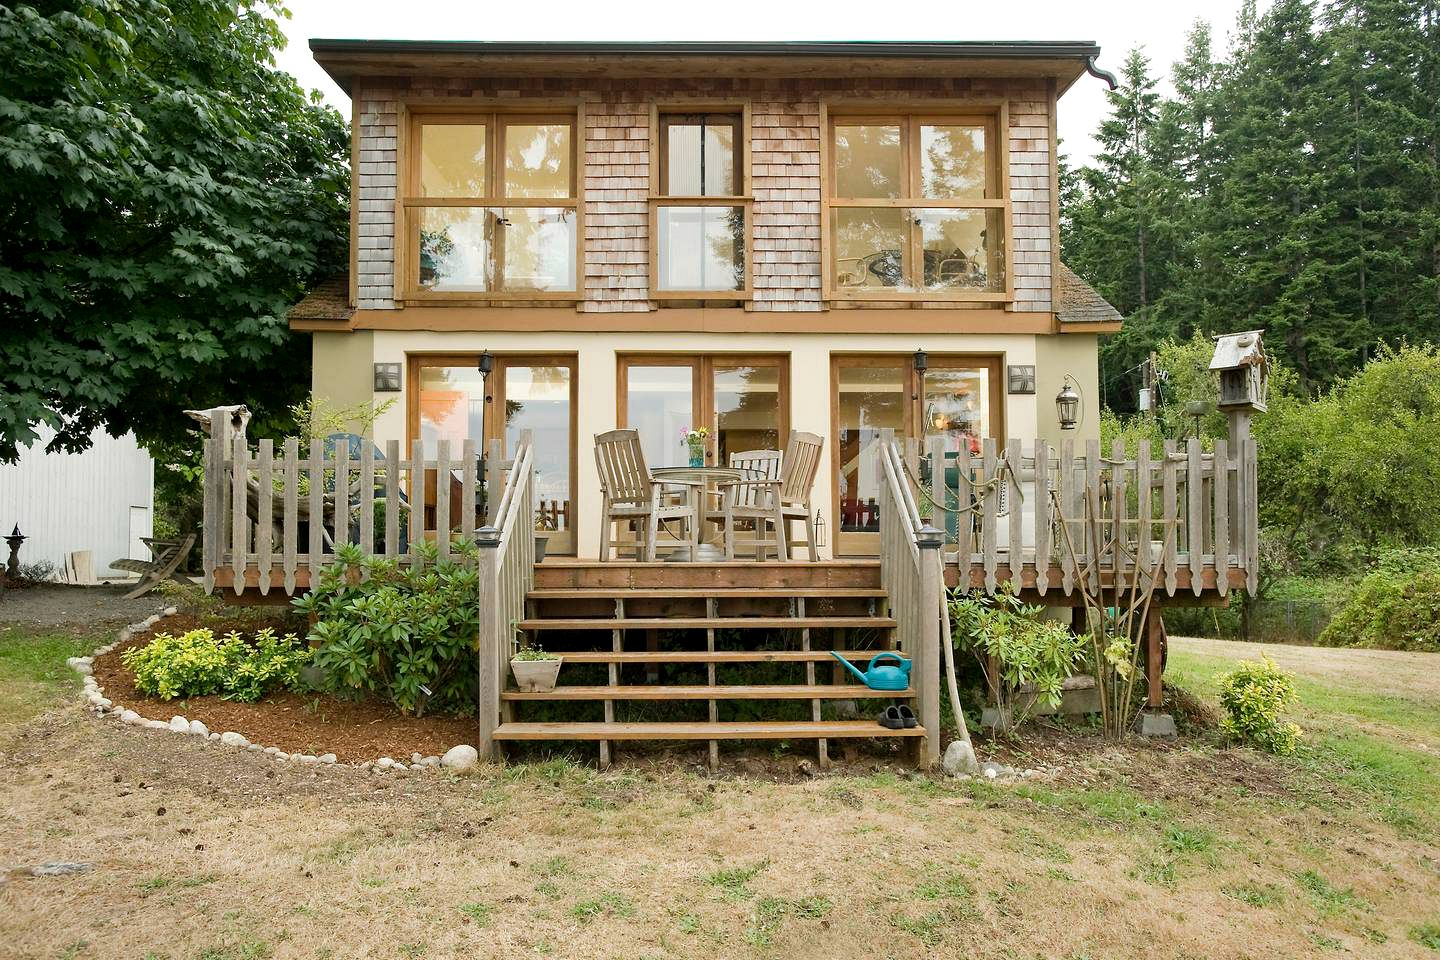 Vacation Rentals (Kingston, Washington, United States)